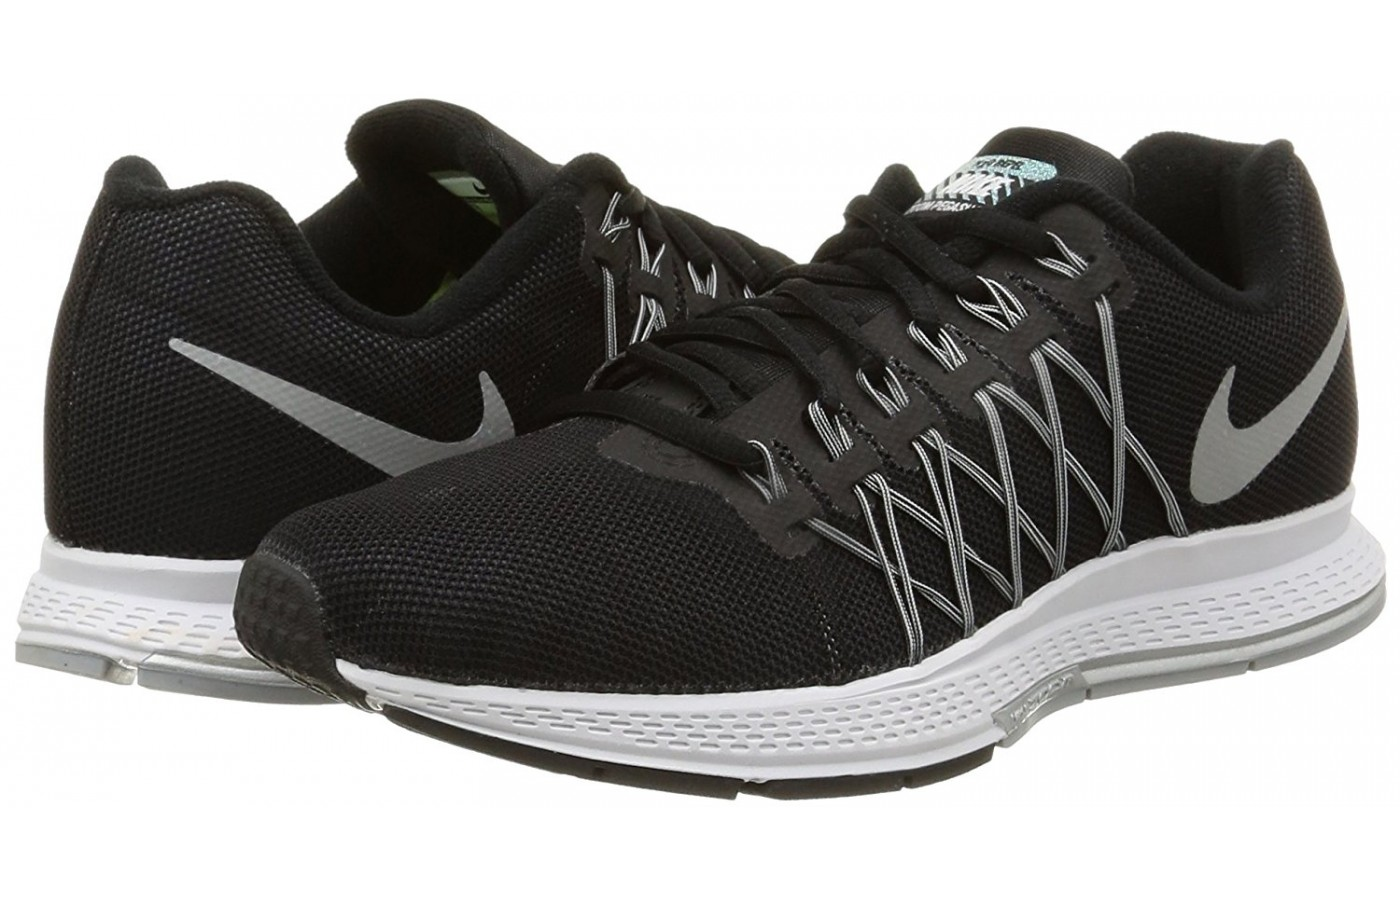 best service 63b2d 7f733 Nike Zoom Pegasus 32 Reviewed & Tested in 2019 | WalkJogRun